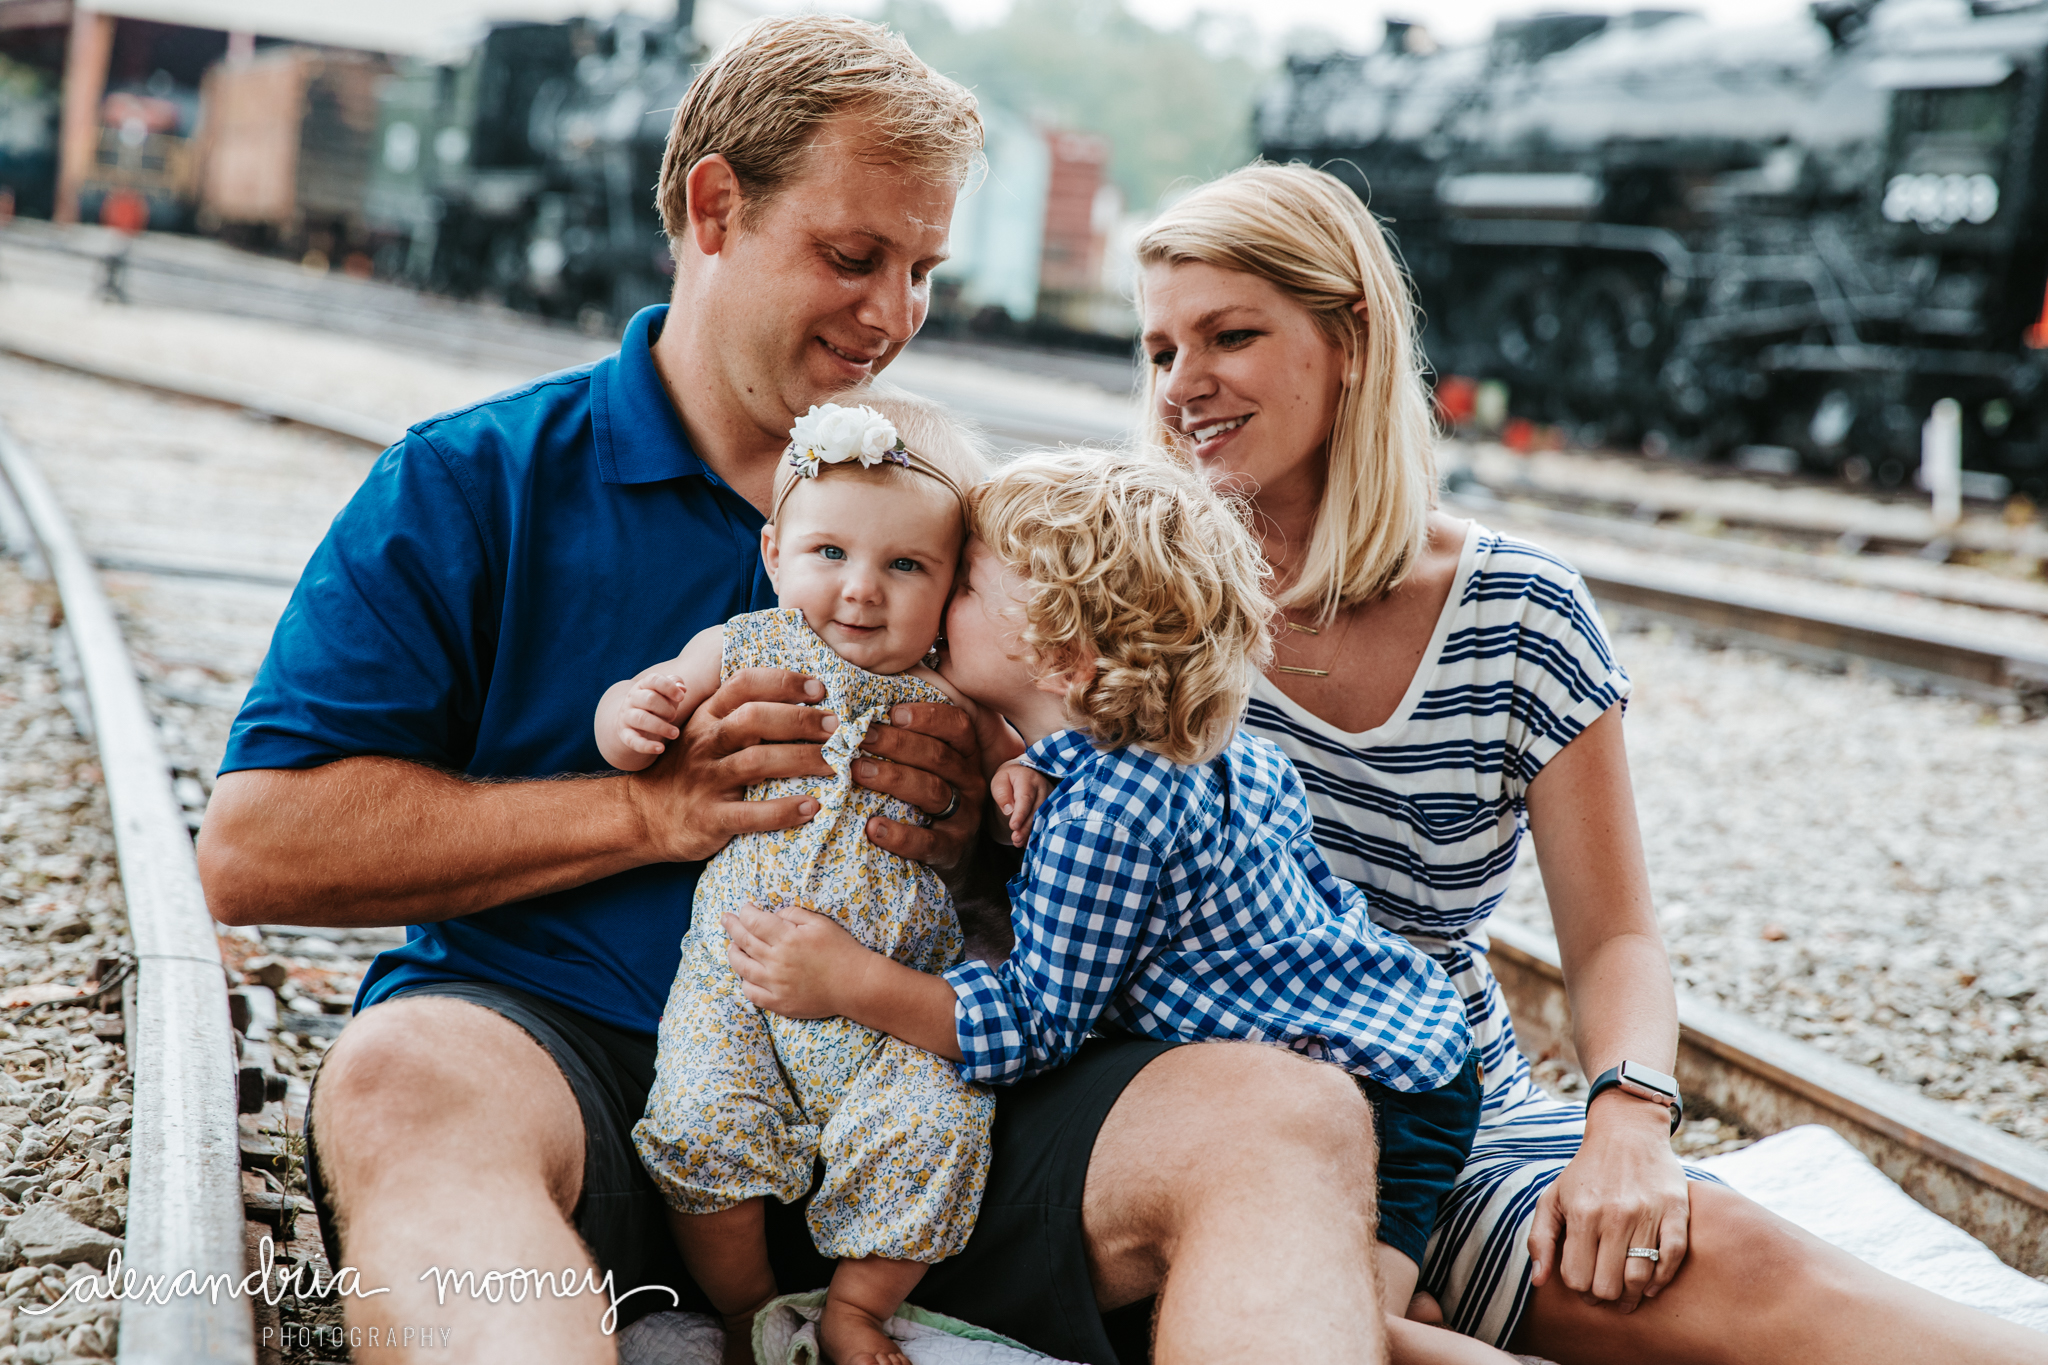 TheWoltersFamily_Watermarked-1.jpg